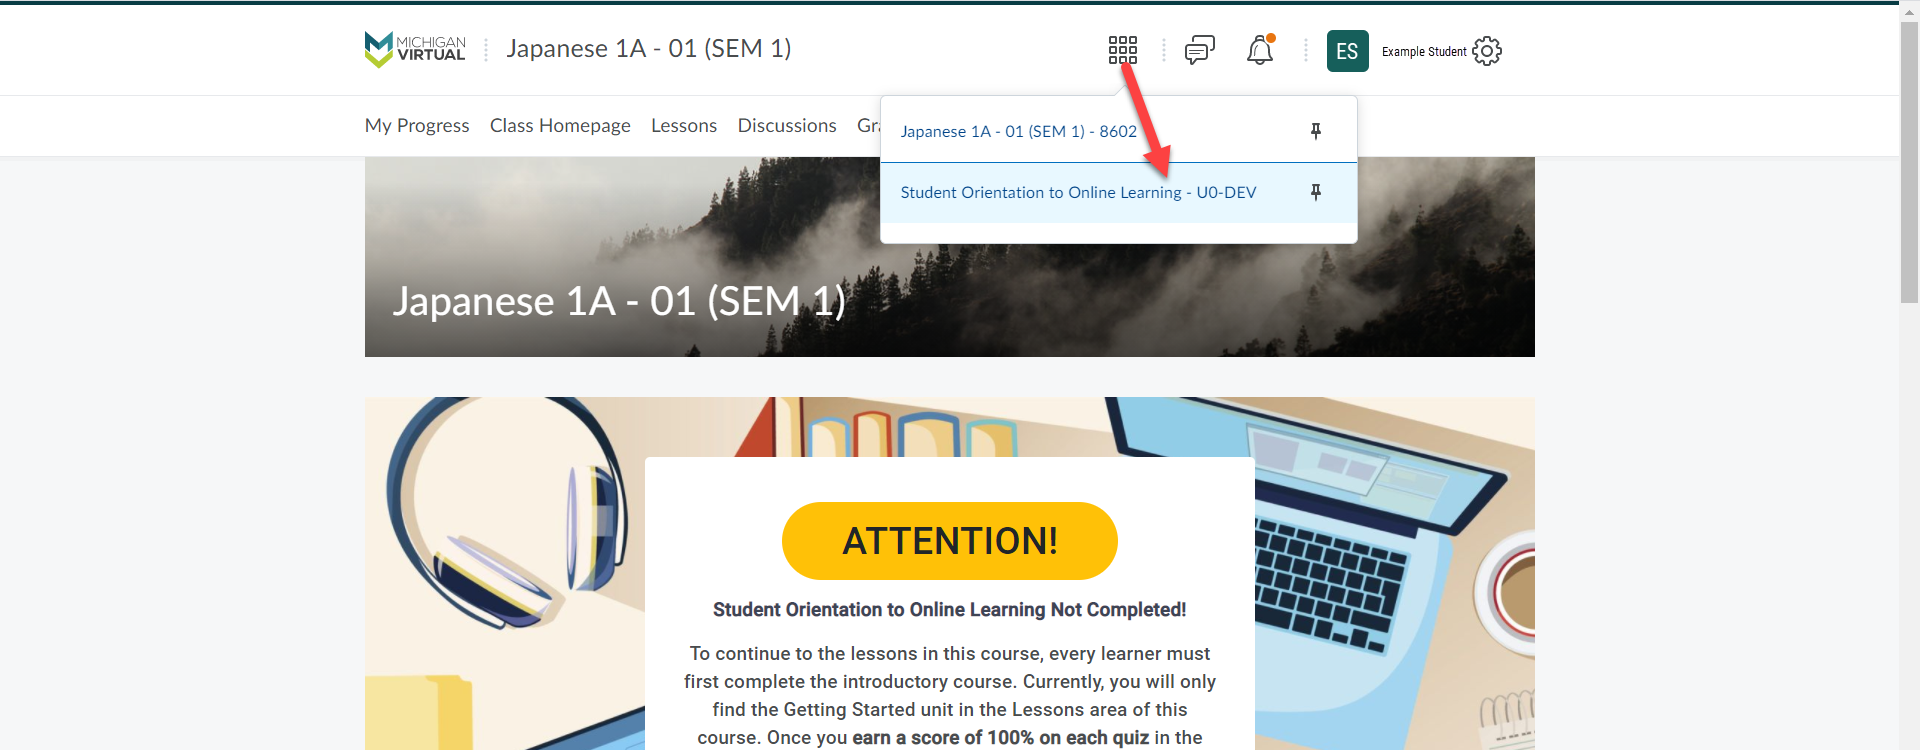 An arrow points from the waffle icon in the top banner to the Student Orientation to Online Learning option.